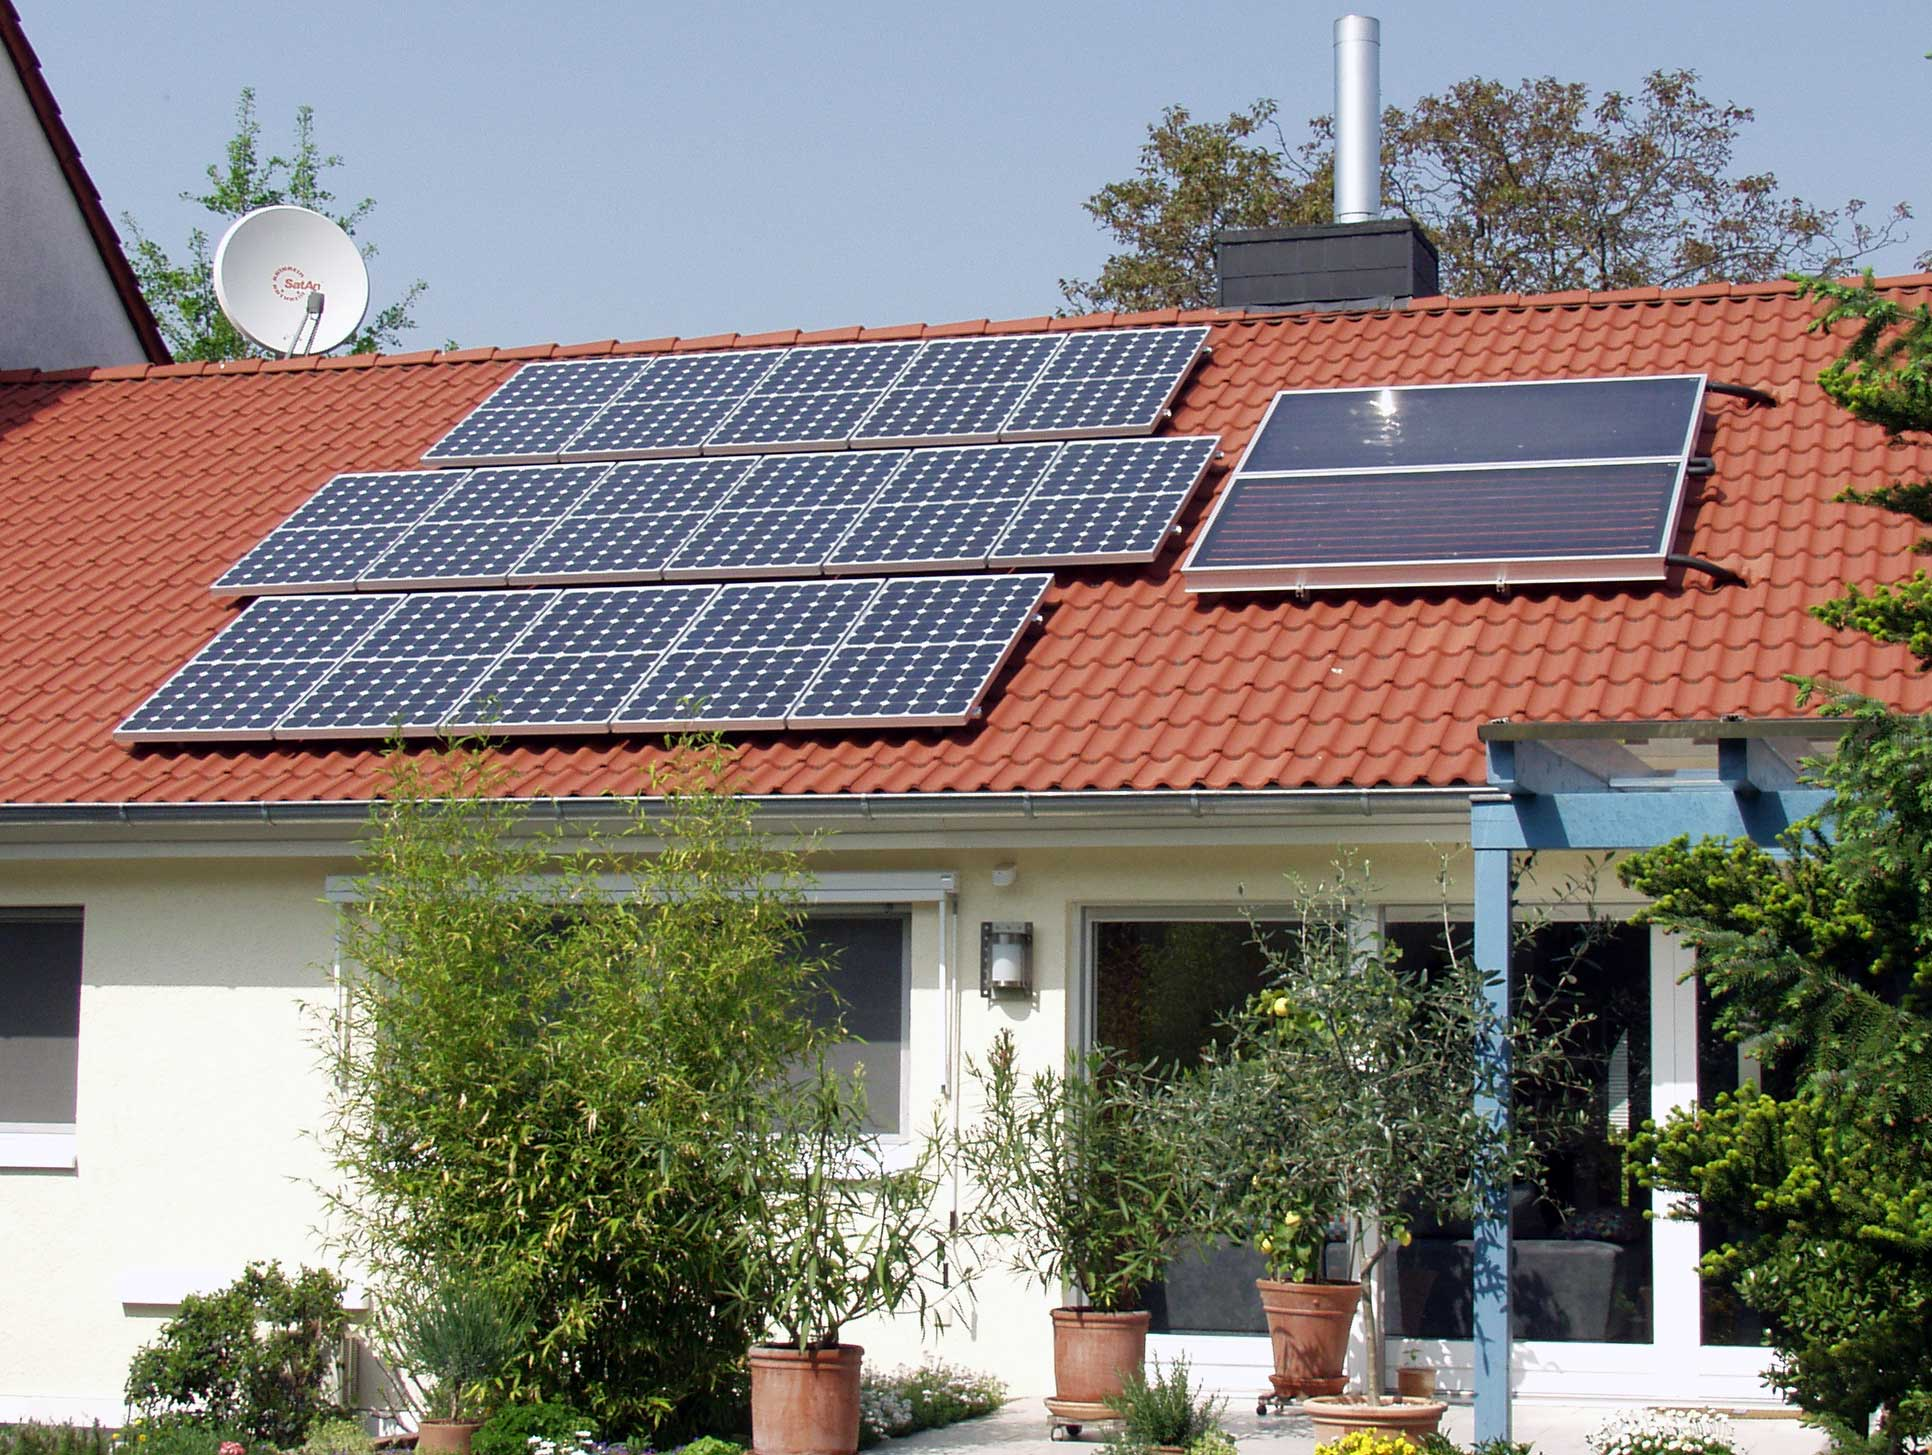 Wagner&Co Solar Heat Europe – Photovoltaic panels and solar thermal collectors on the same roof